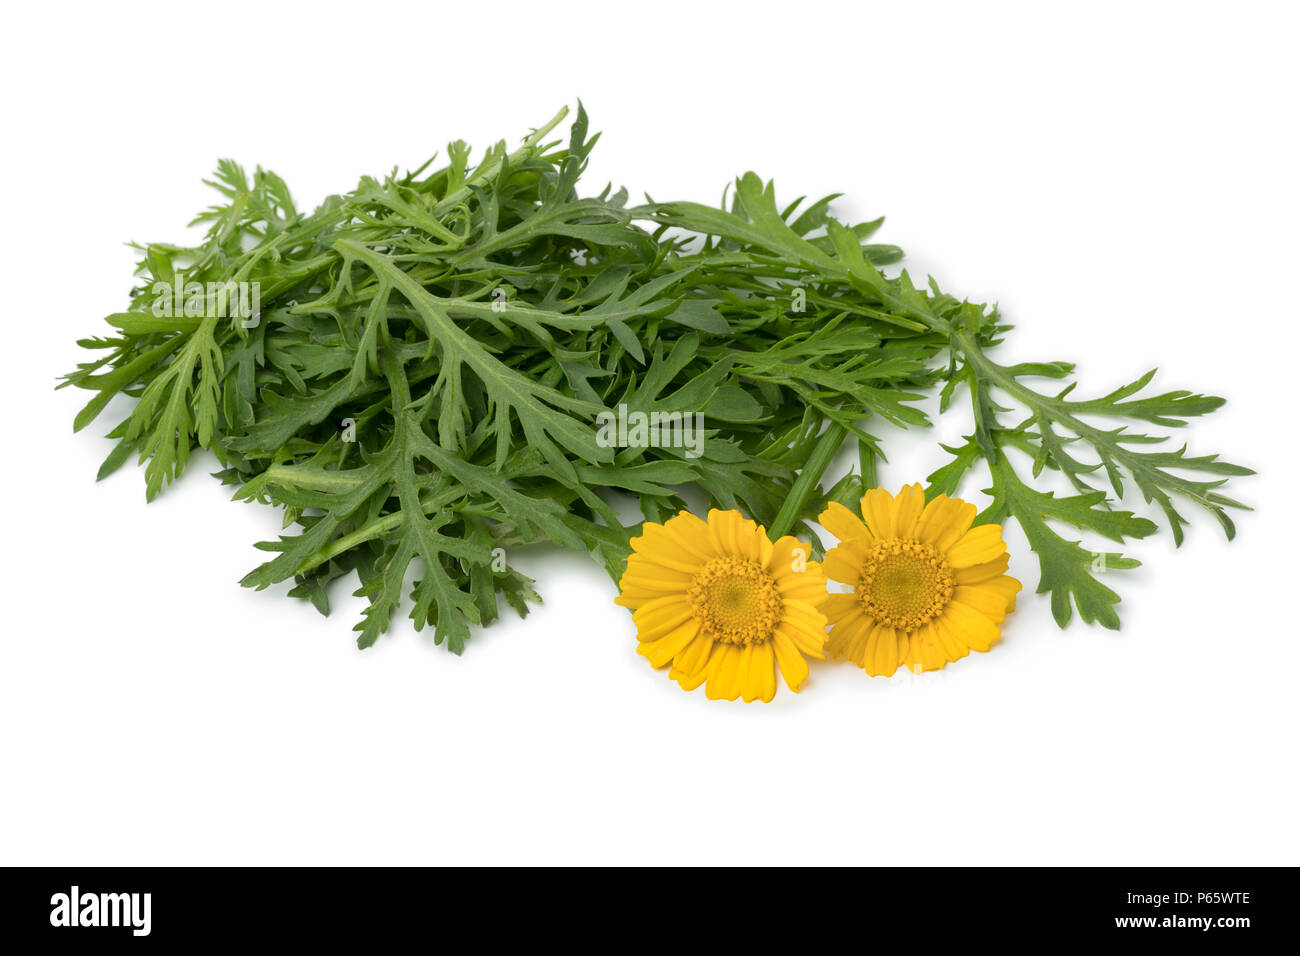 Fresh raw Tong ho spinach and yellow flowers  isolated on white background - Stock Image